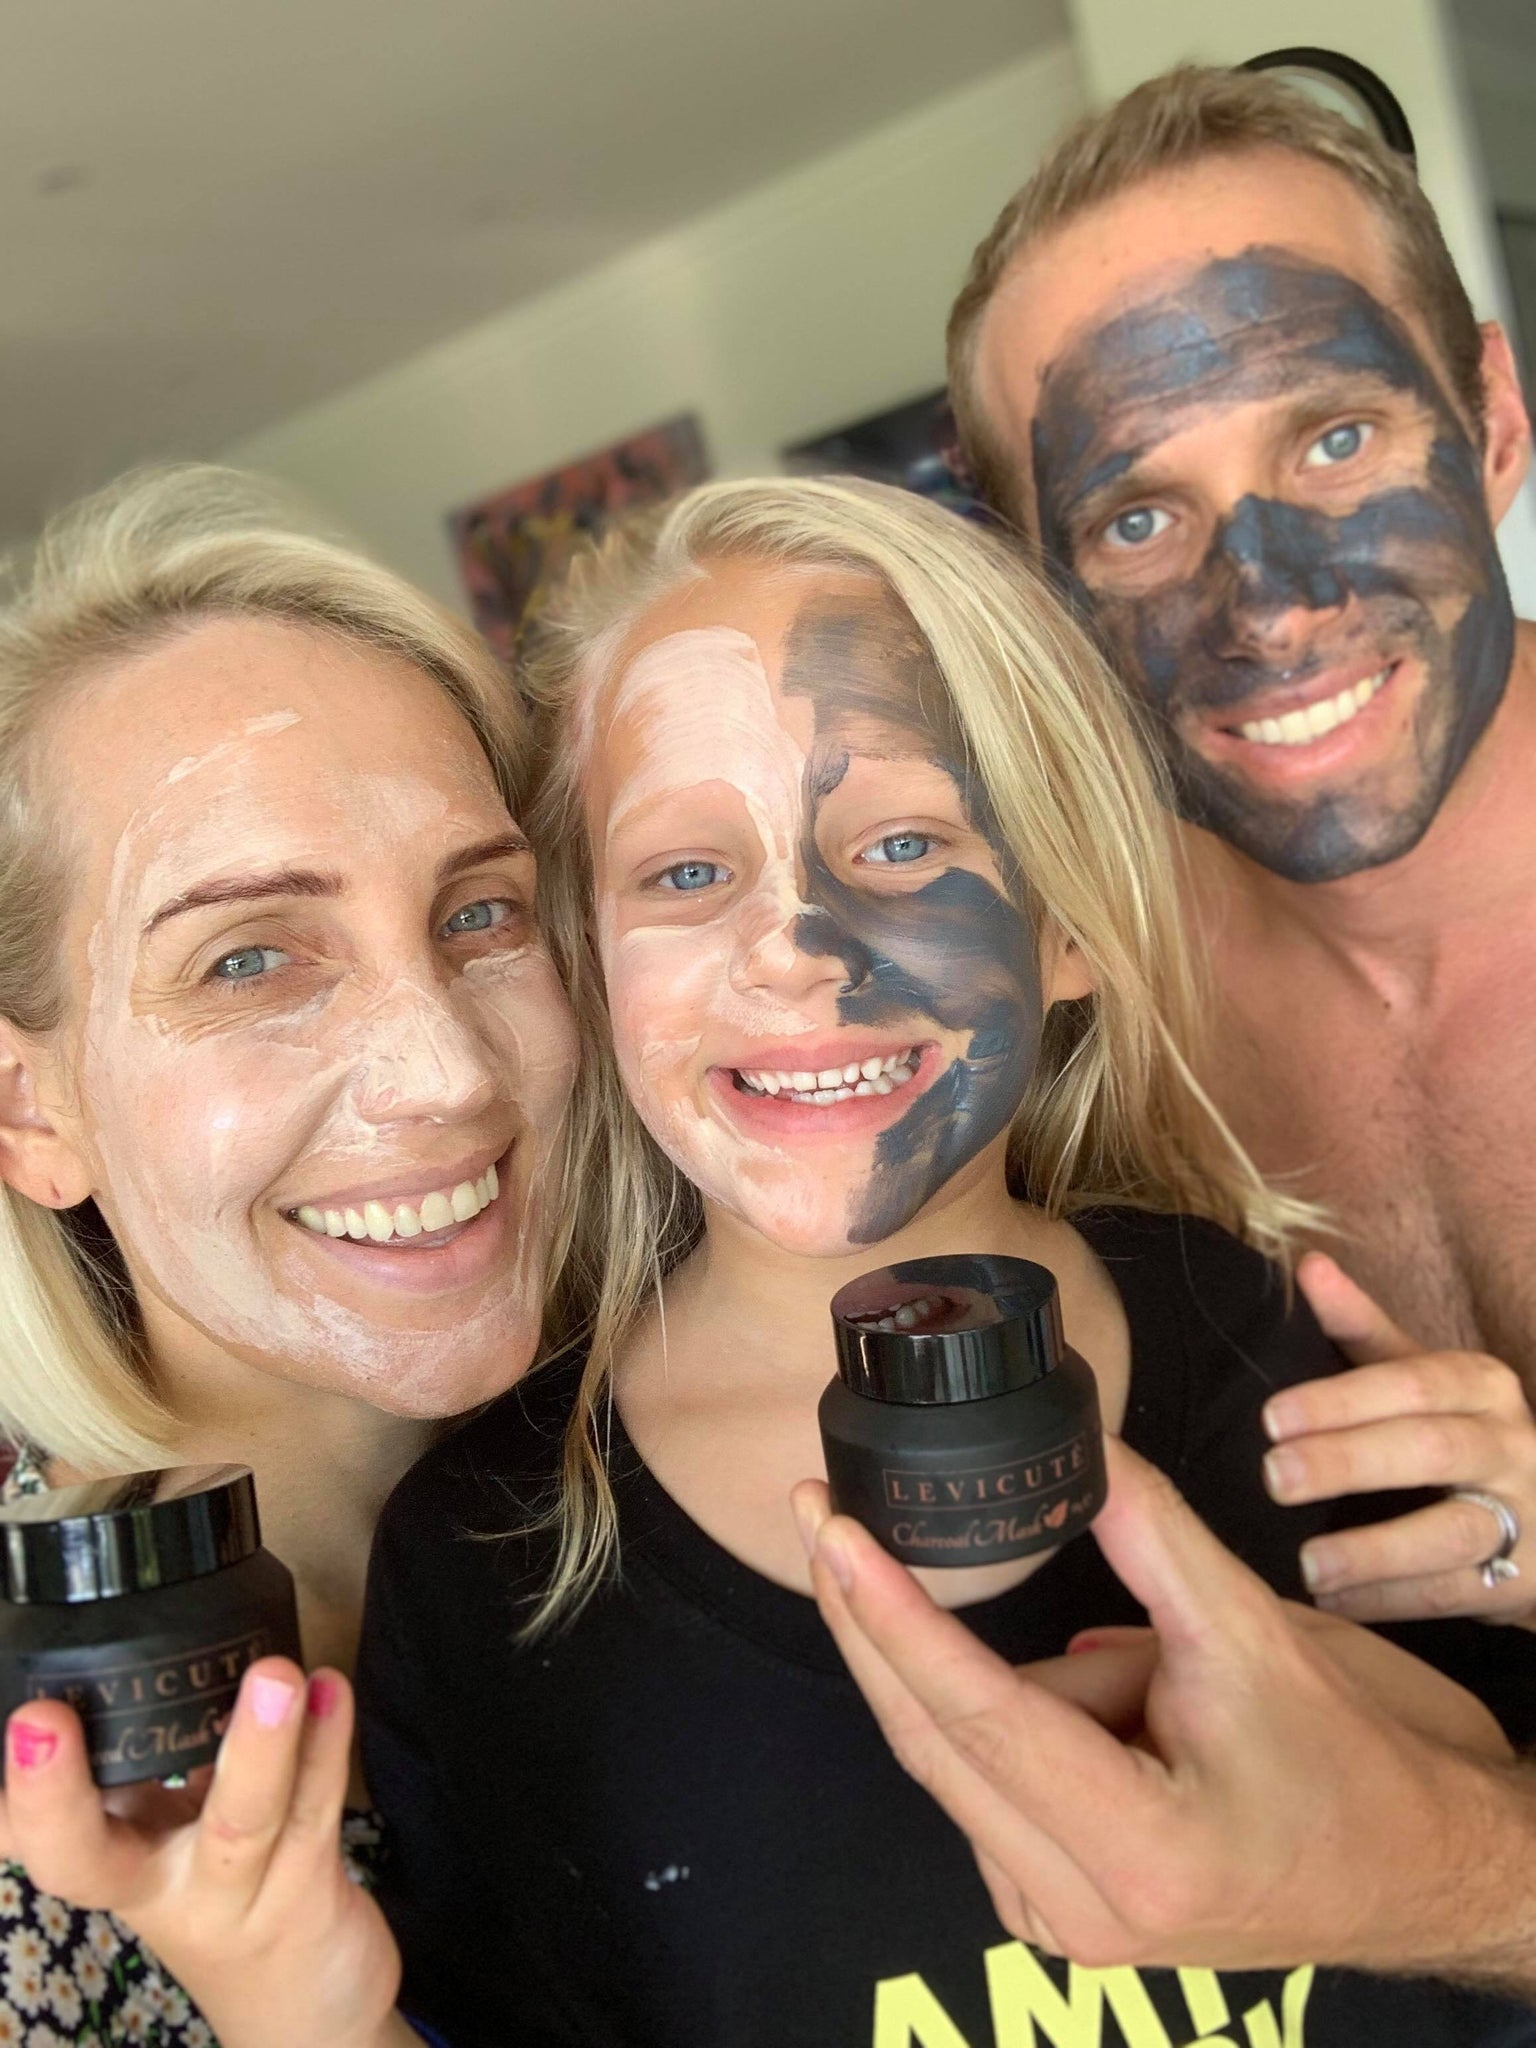 Emily OKeeffe tries out our Levicute facemasks with her whole family - thanks Em!